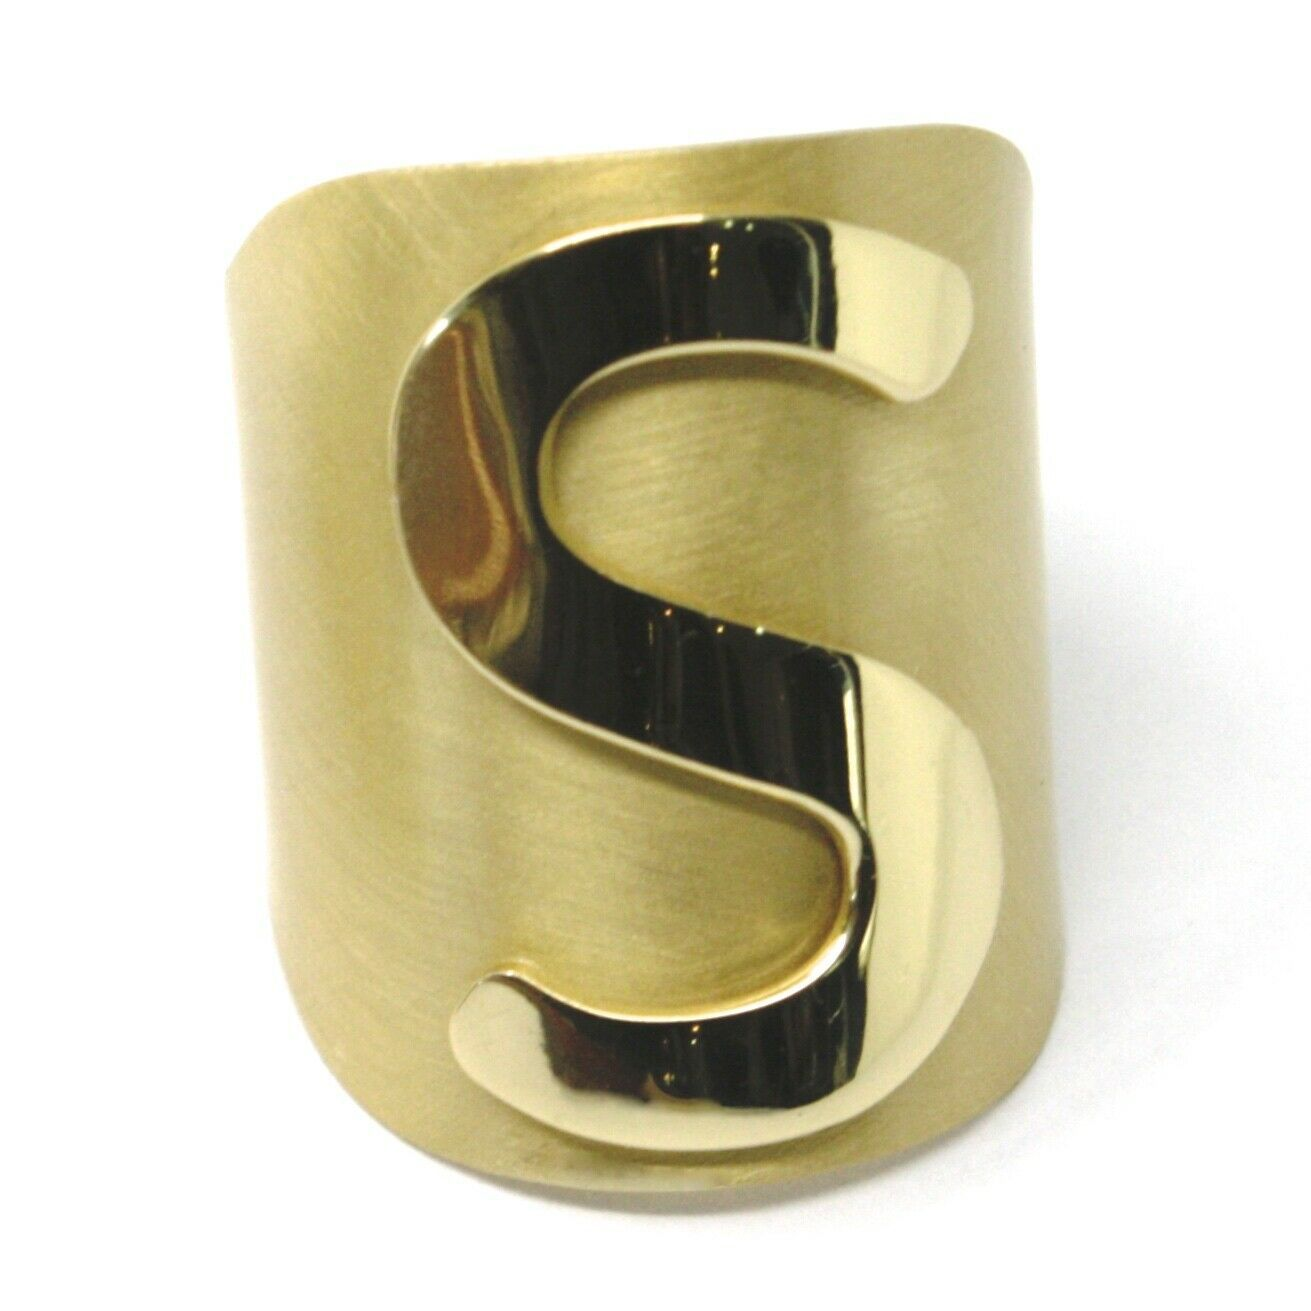 SOLID 925 STERLING SILVER BAND RING, BIG LETTER S, YELLOW SATIN FINISH, SIZABLE